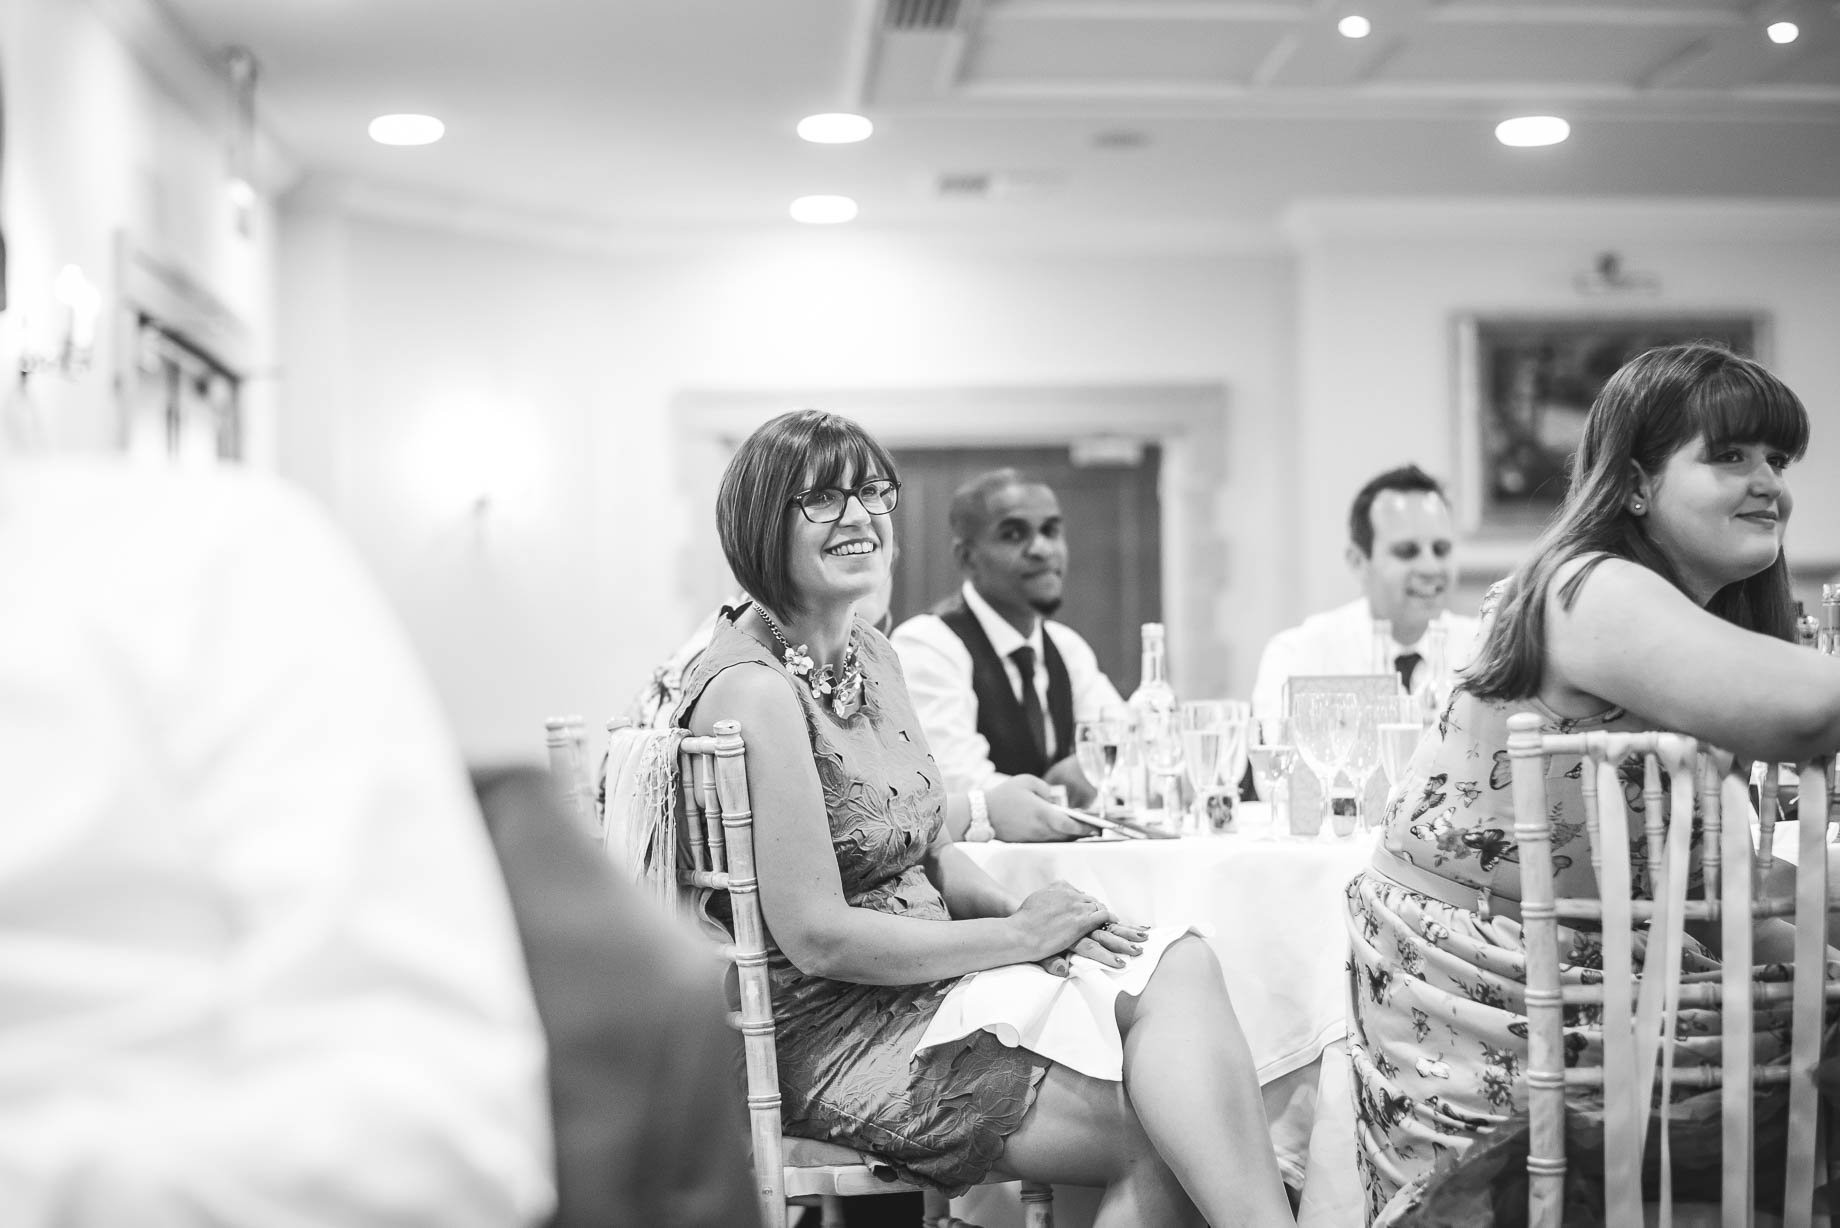 Luton Hoo wedding photography by Guy Collier Photography - Lauren and Gem (131 of 178)